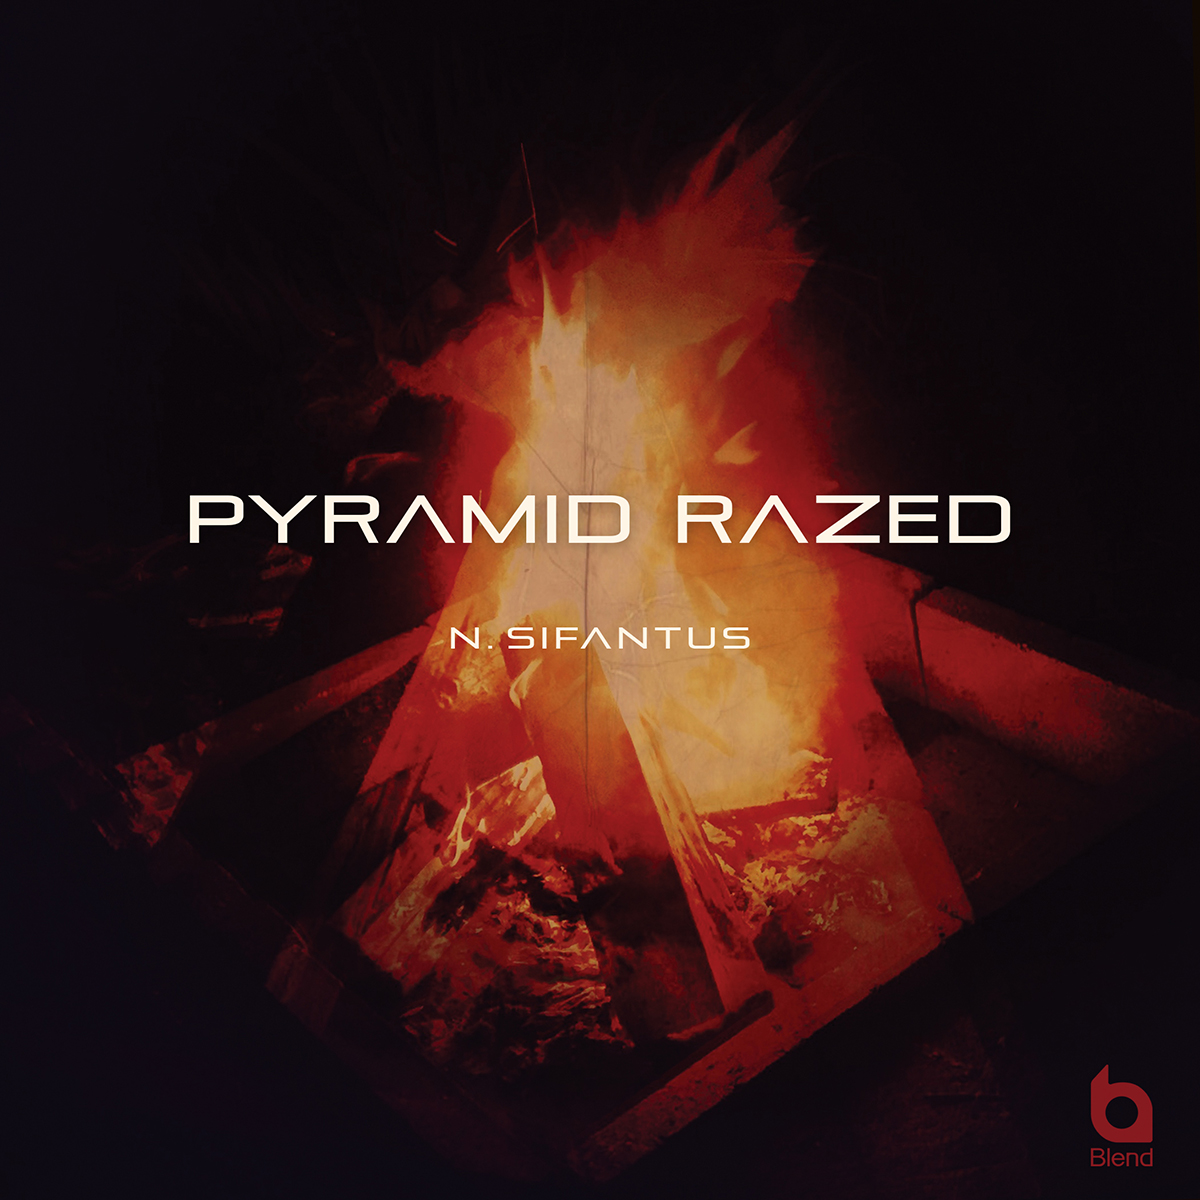 Pyramid Razed by N Sifantus